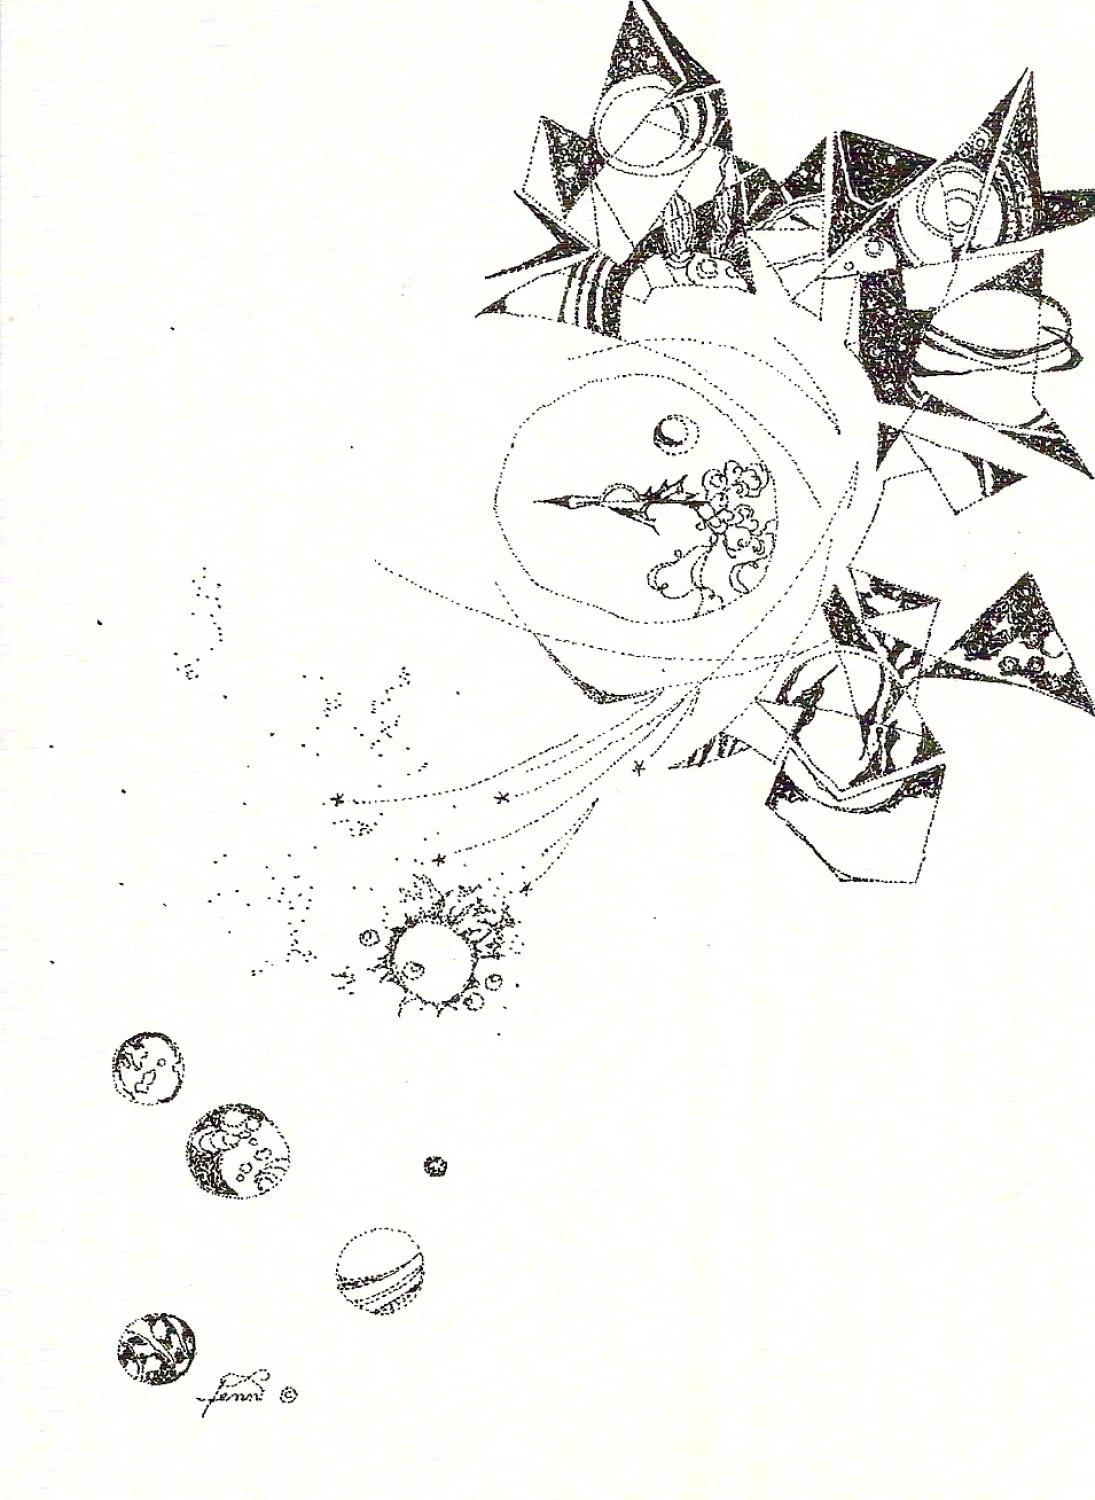 Pen & ink drawing folding space